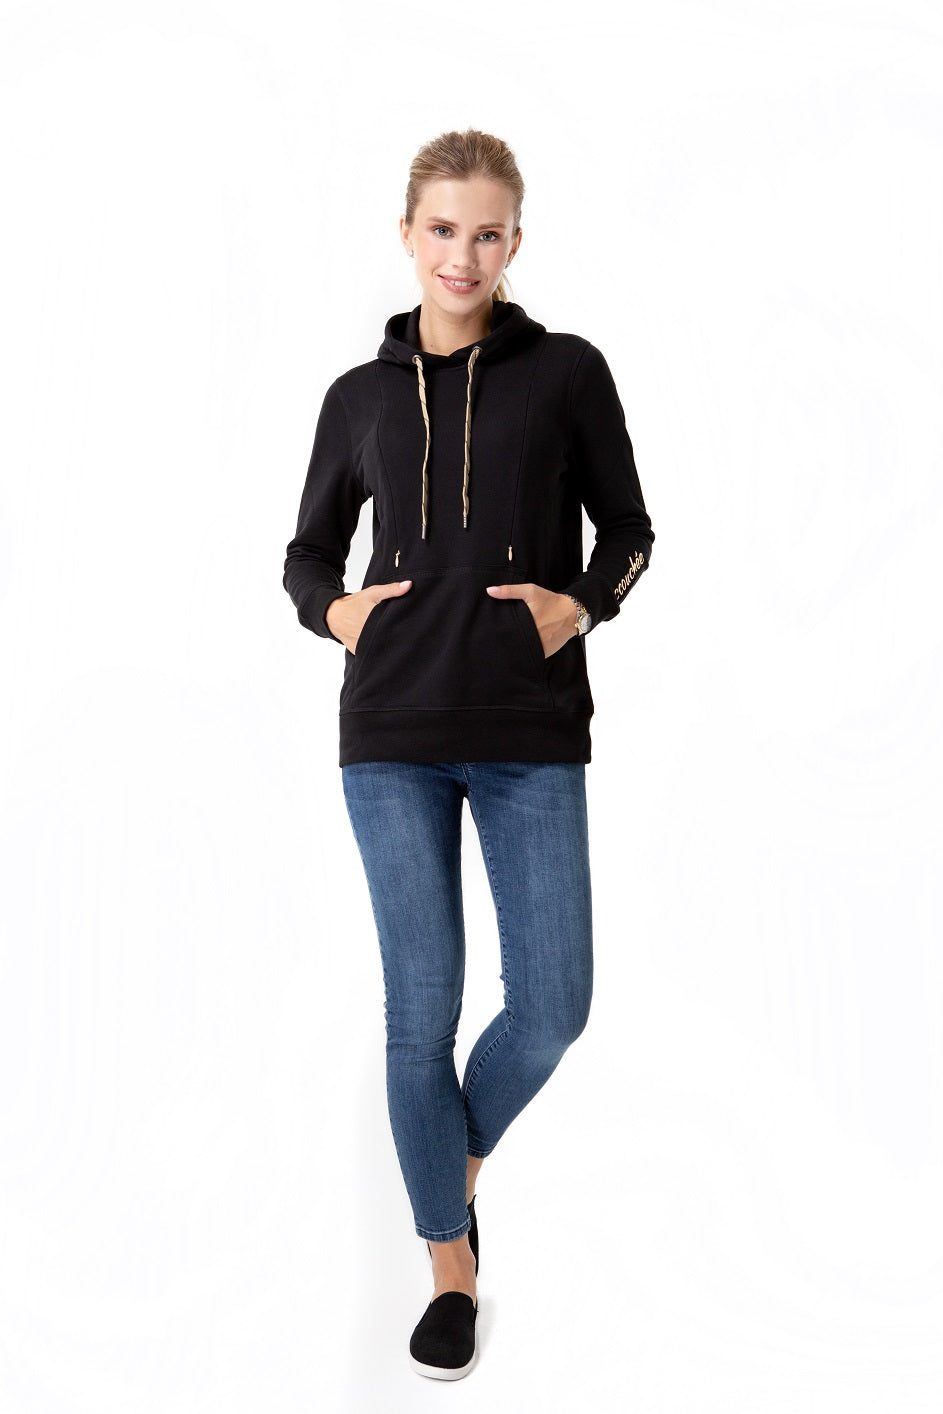 Iconic Sweatshirt for Pregnancy, Nursing & Beyond